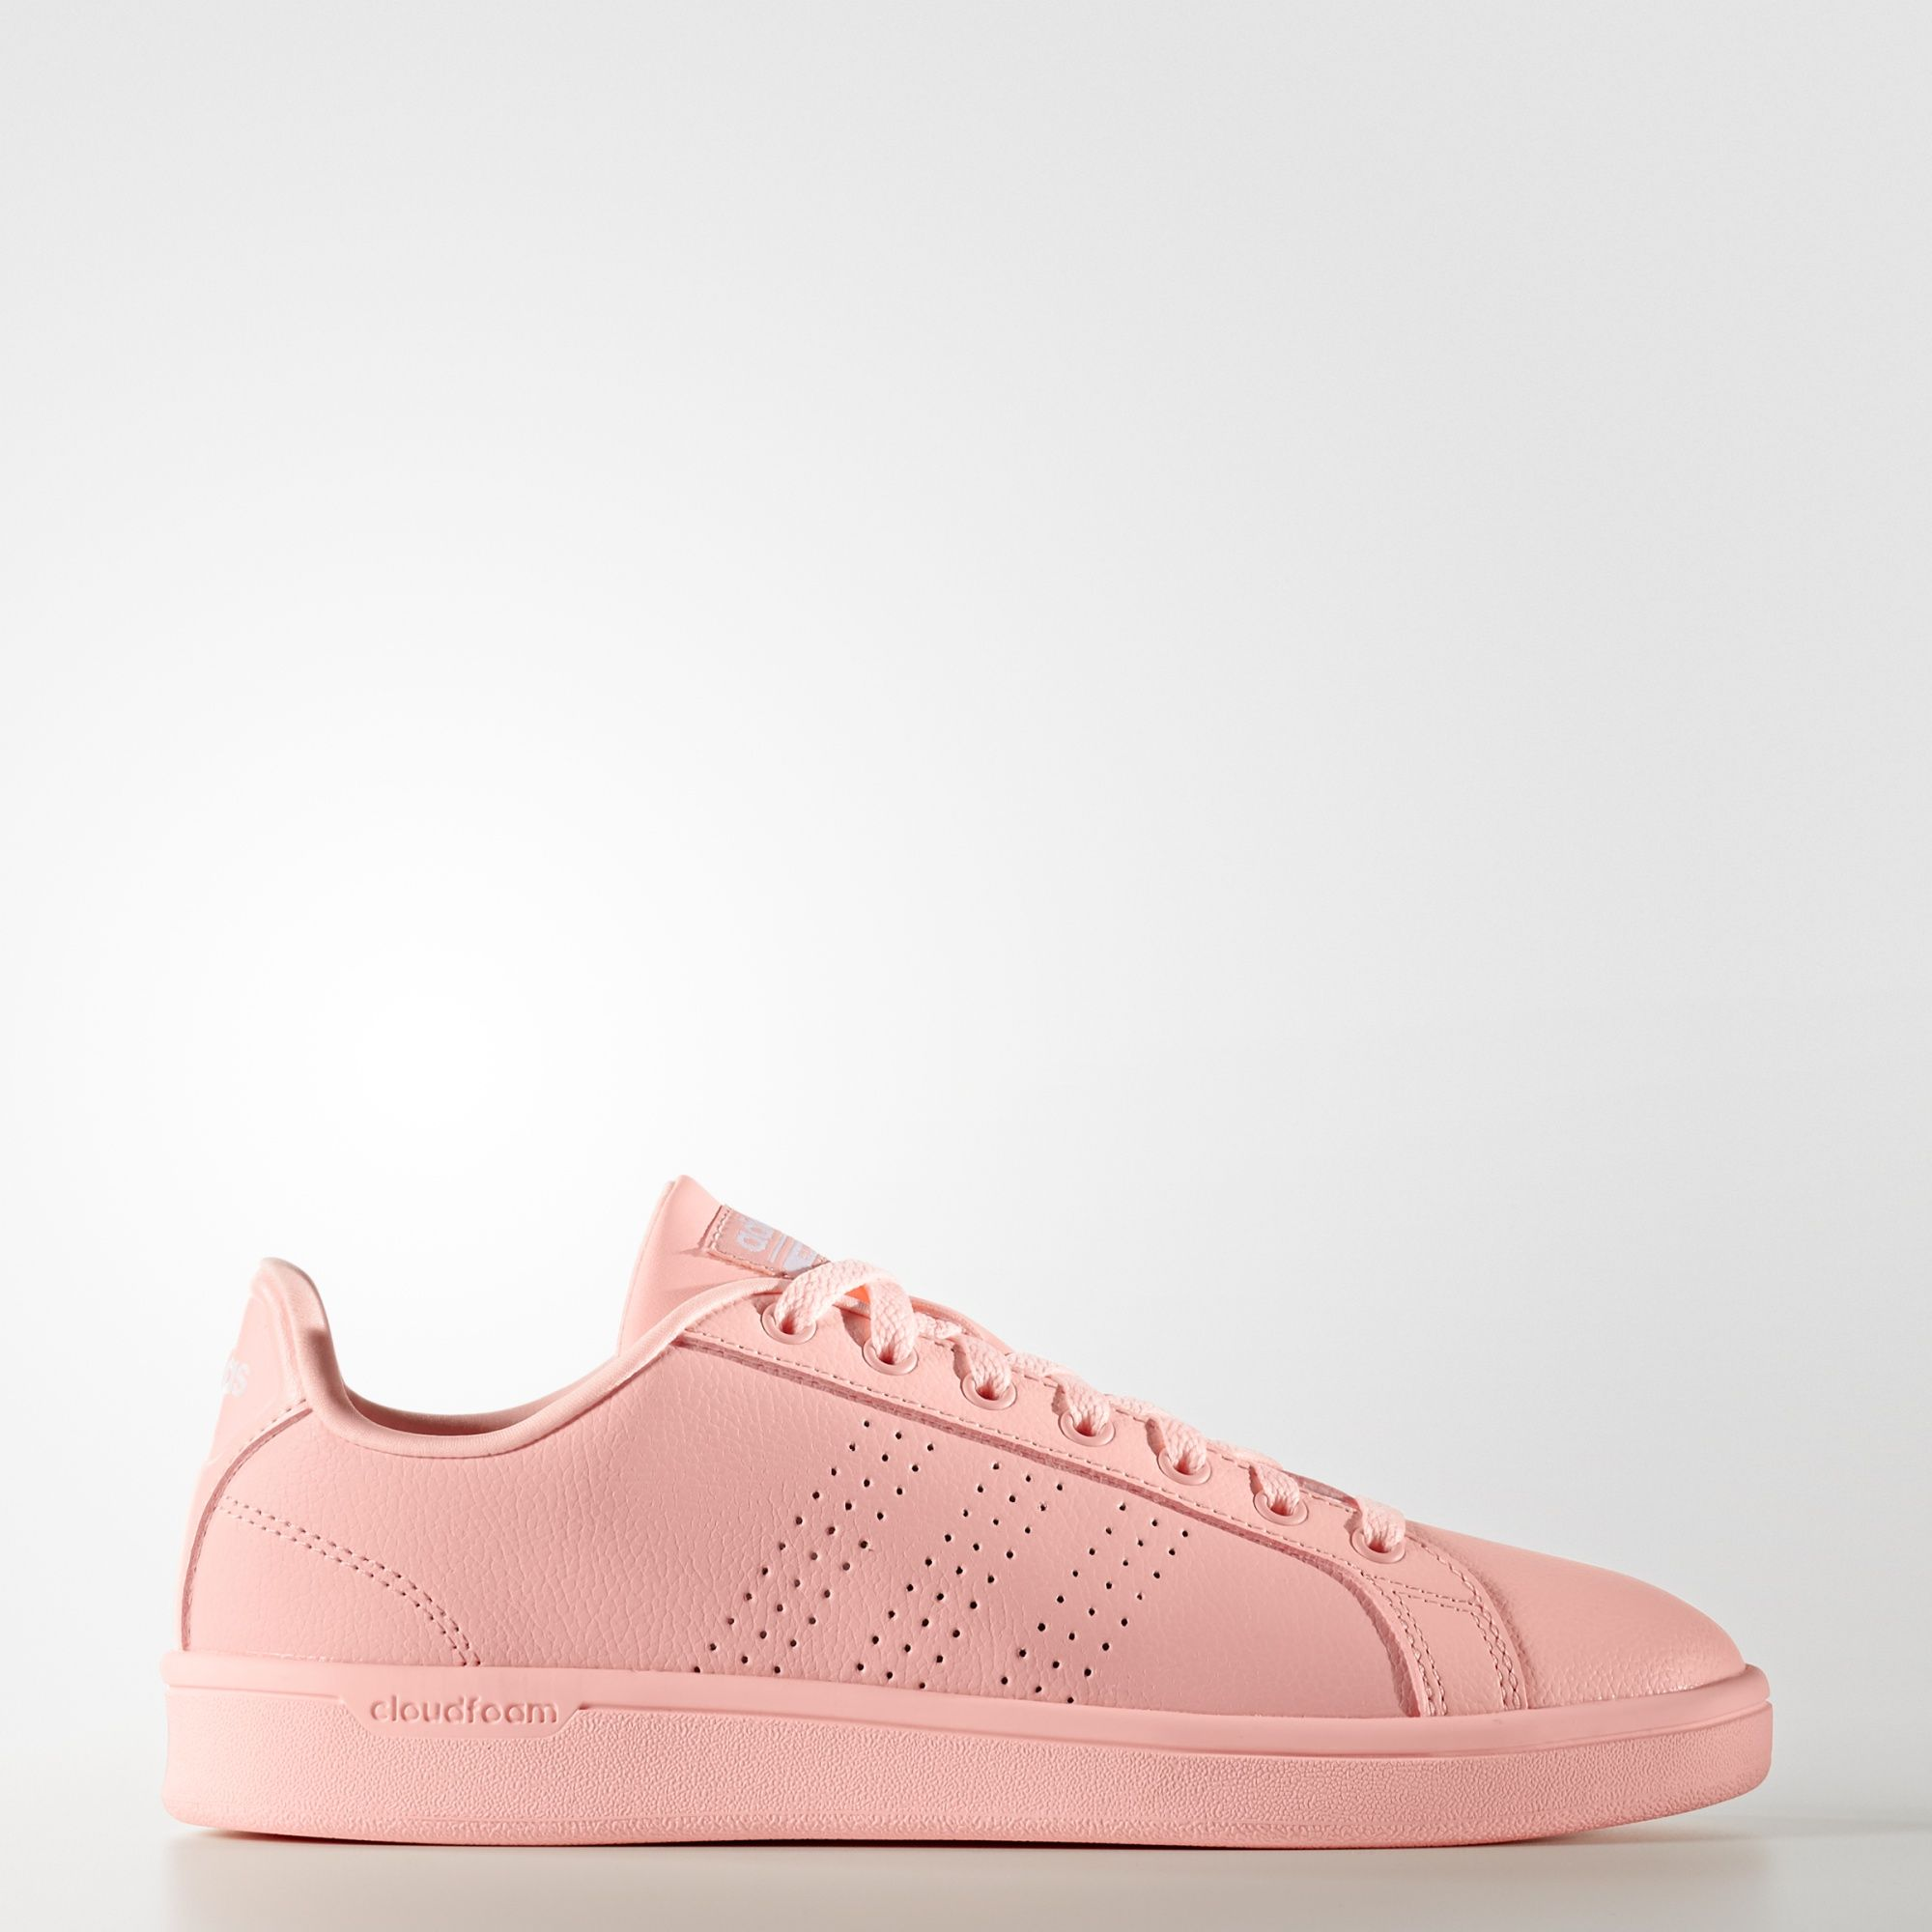 Clean court style with a feminine look. Perforated 3-Stripes ...